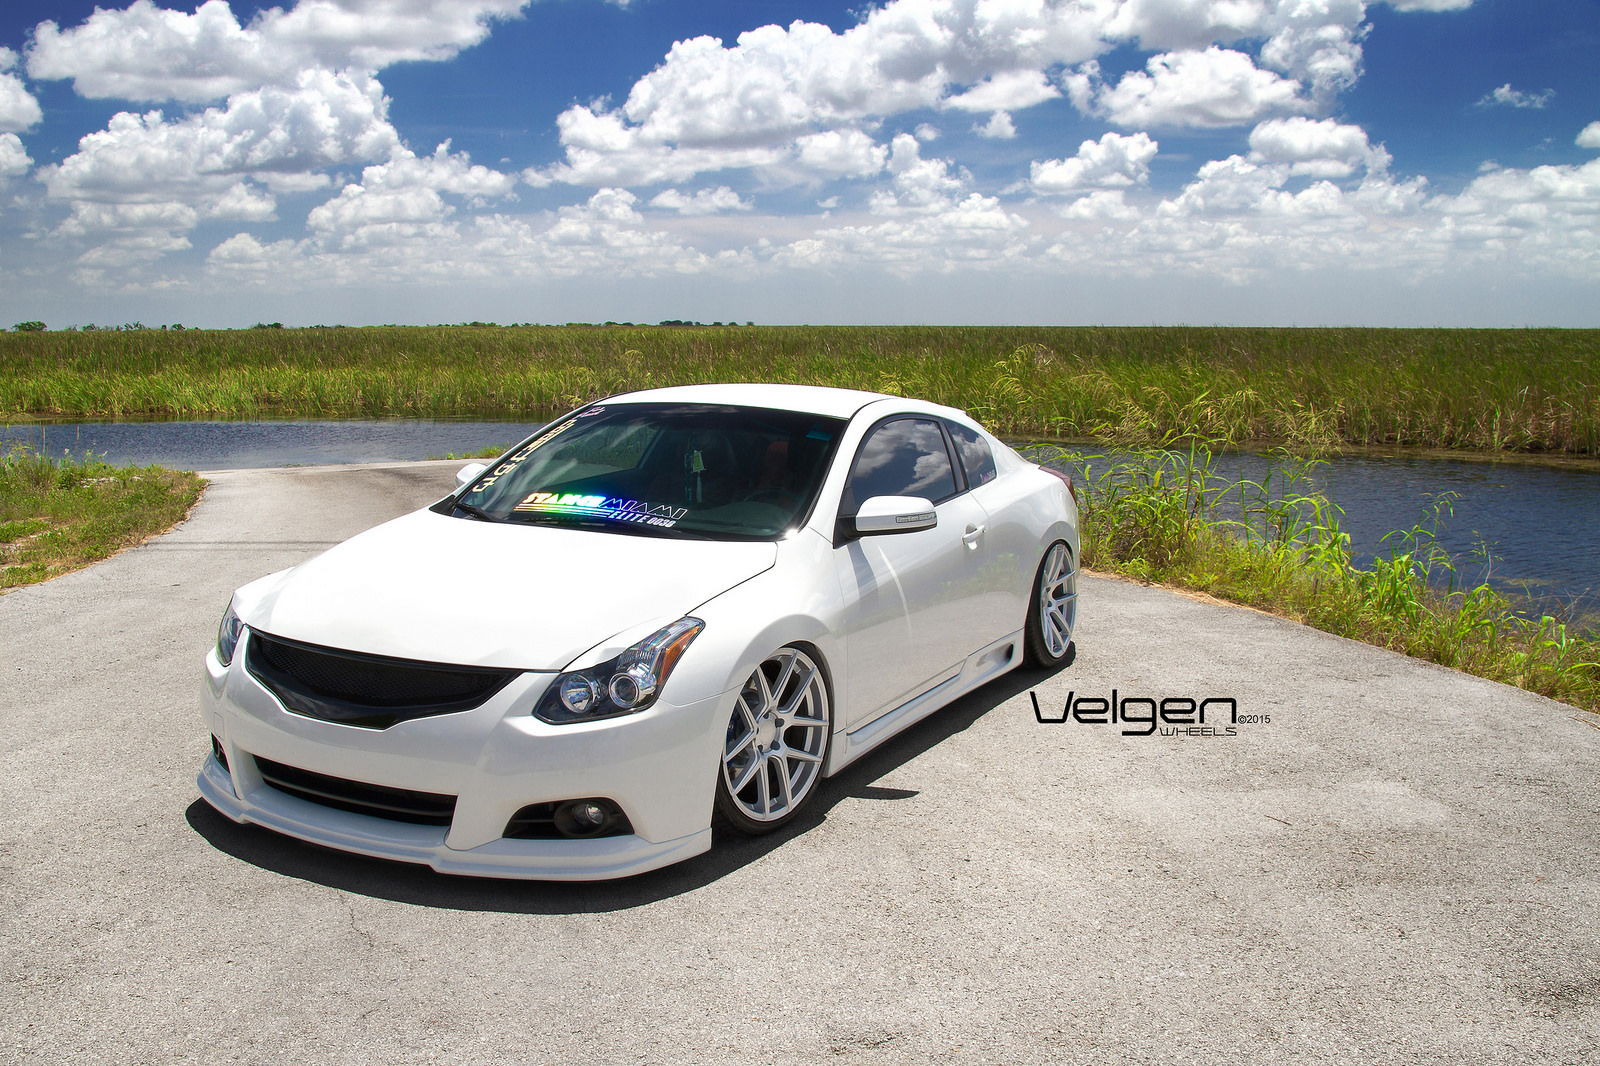 bagged nissan altima coupe on velgen wheels vmb5. Black Bedroom Furniture Sets. Home Design Ideas